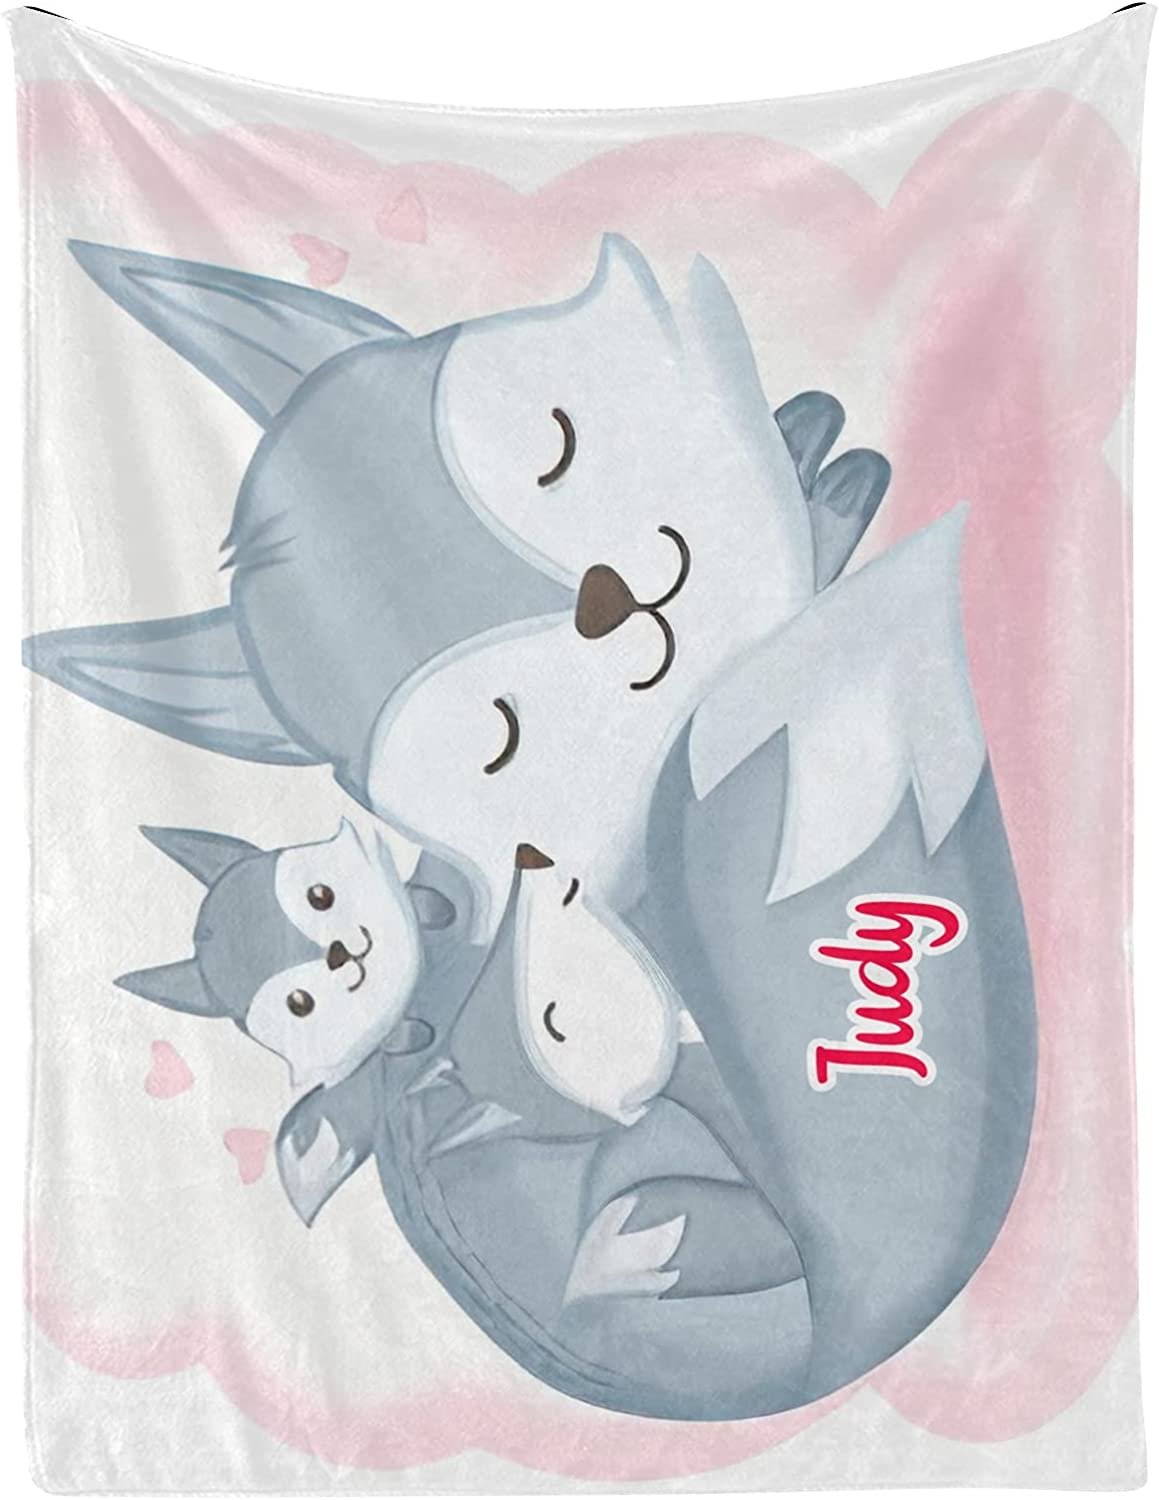 1 year warranty Fox Heart Ranking TOP7 Watercolor Personalized Baby Blankets with Name 30x40